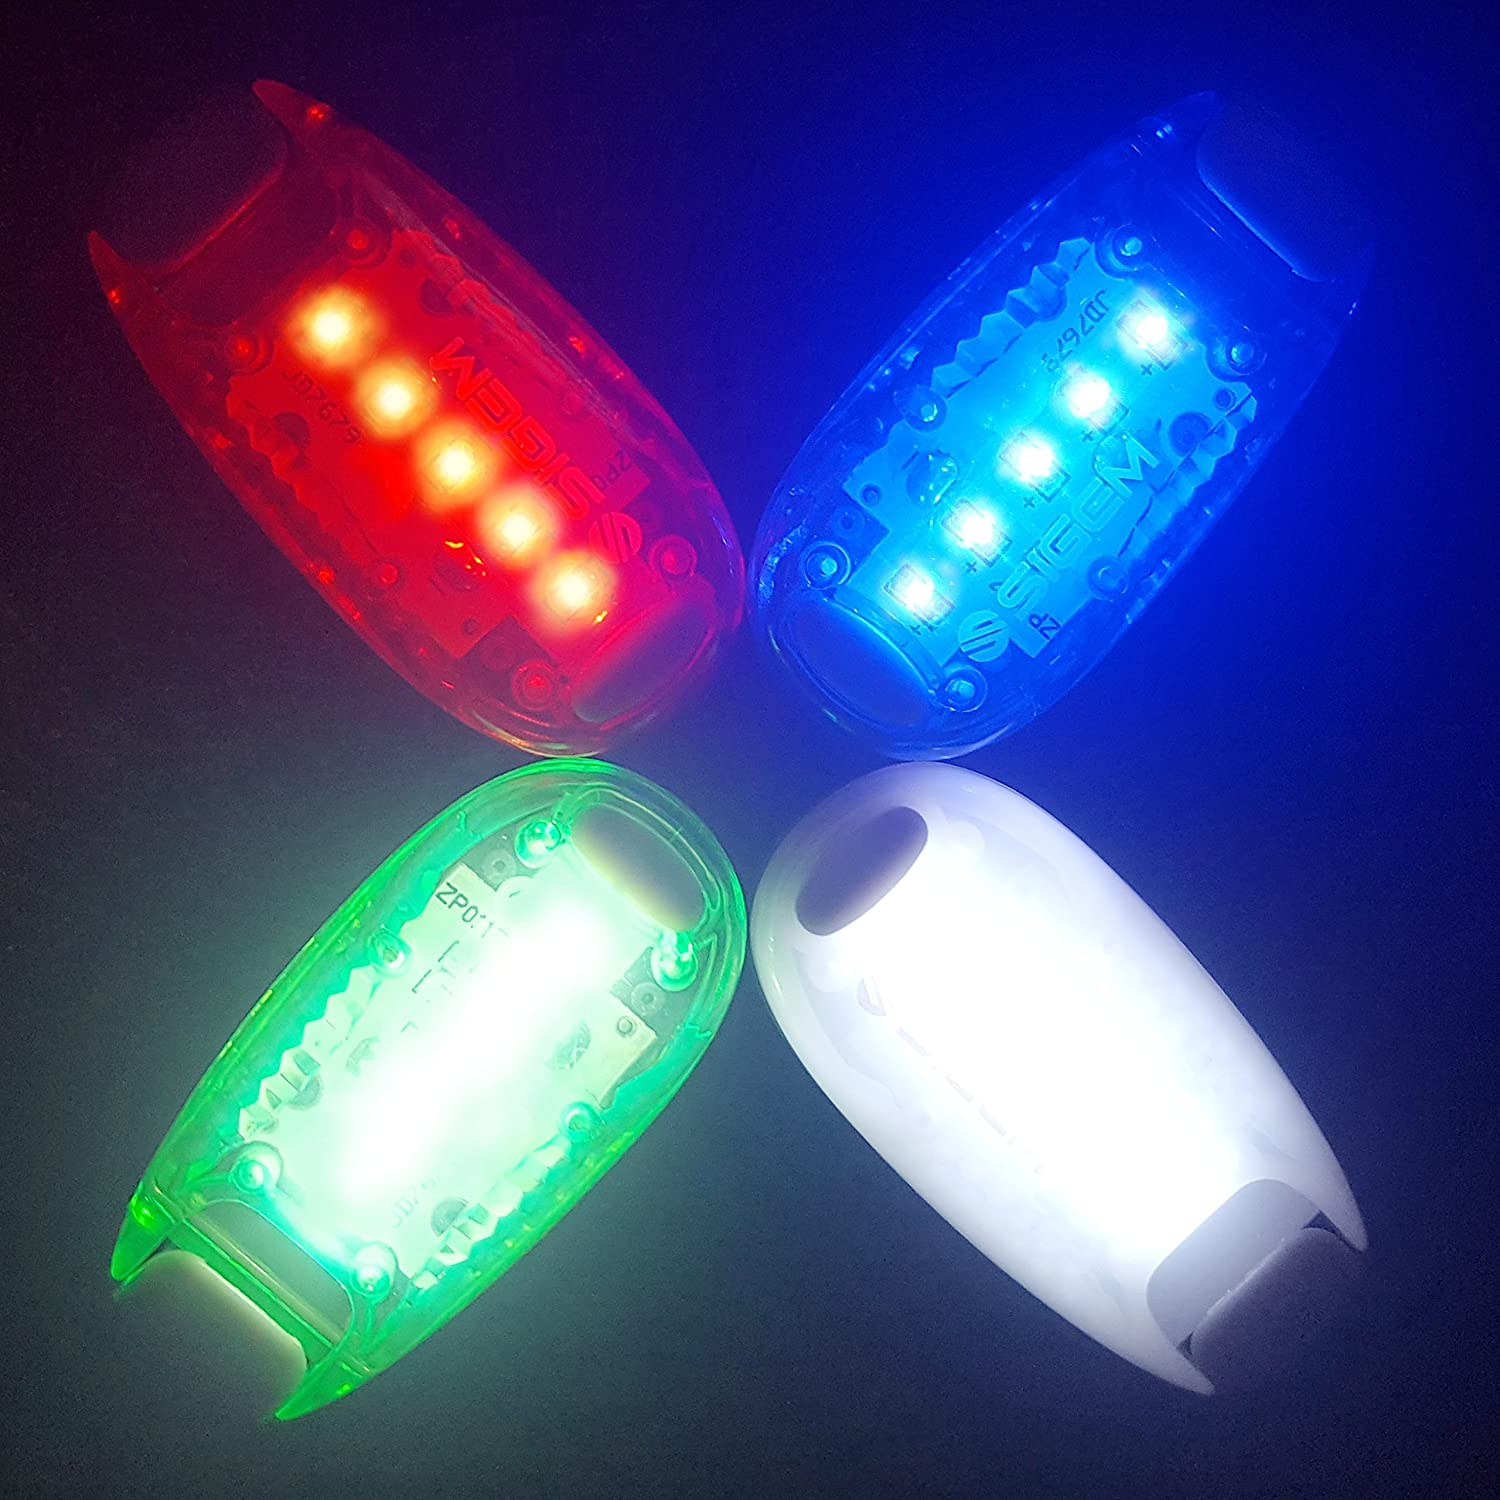 Clip on Flashing Strobe Light High Visibility Running Jogging Walking Cycling Best Reflective Gear Kids Dogs Bicycle Helmet Bike Tail Light SIGEM LED Safety Lights Free Bonuses